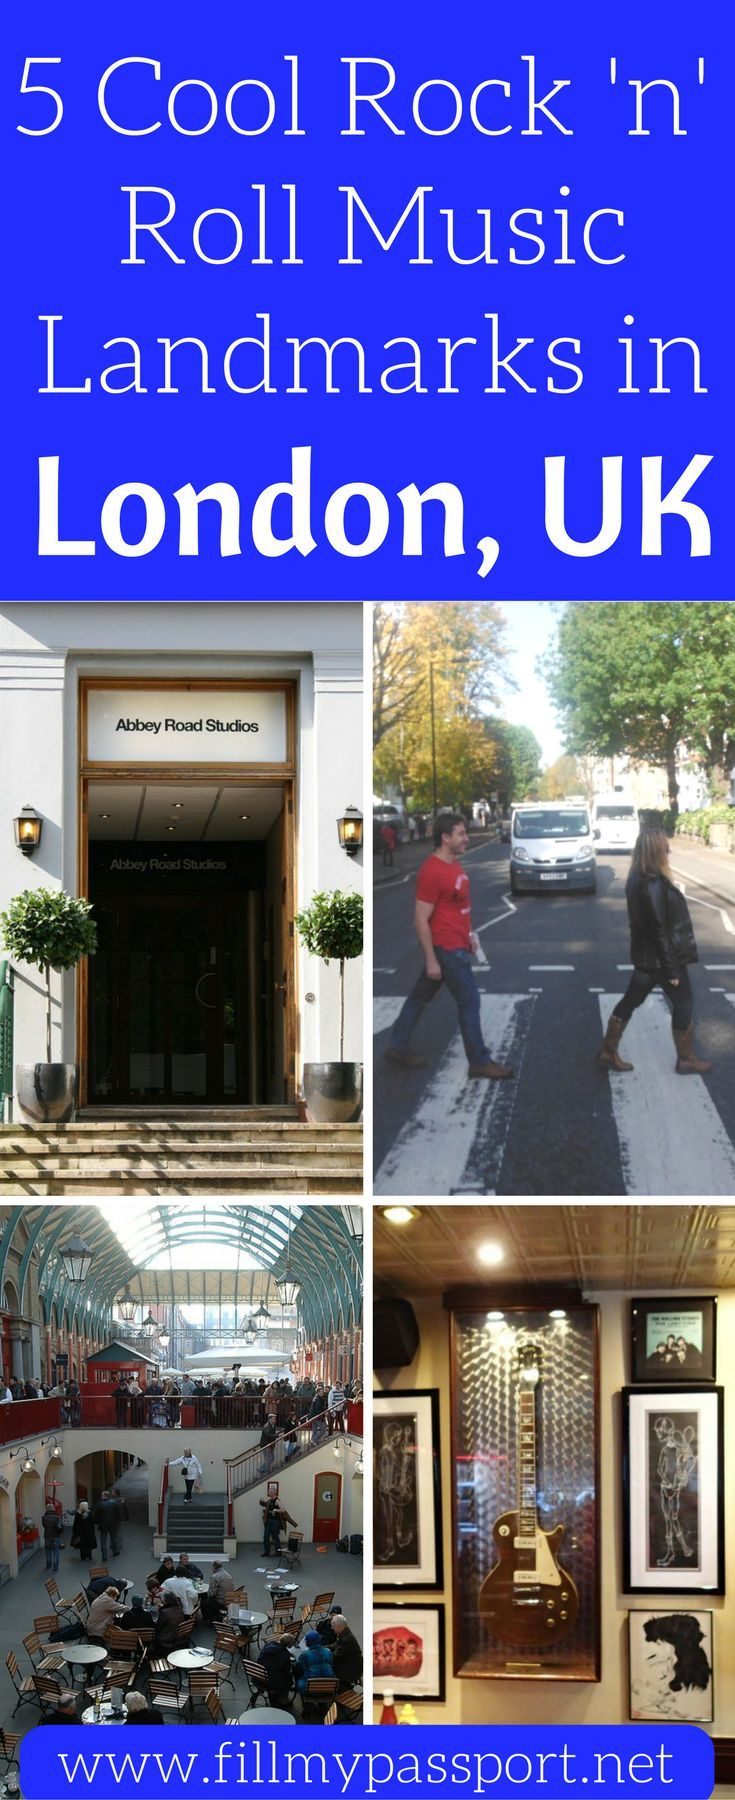 If you're planning a trip to London and you love rock and roll music, you HAVE to check out these awesome landmarks. 5 favorite rock n roll music landmarks in London so you can appreciate the legends from London. Where Freddie Mercury's house is and many other neat rock and roll landmarks.